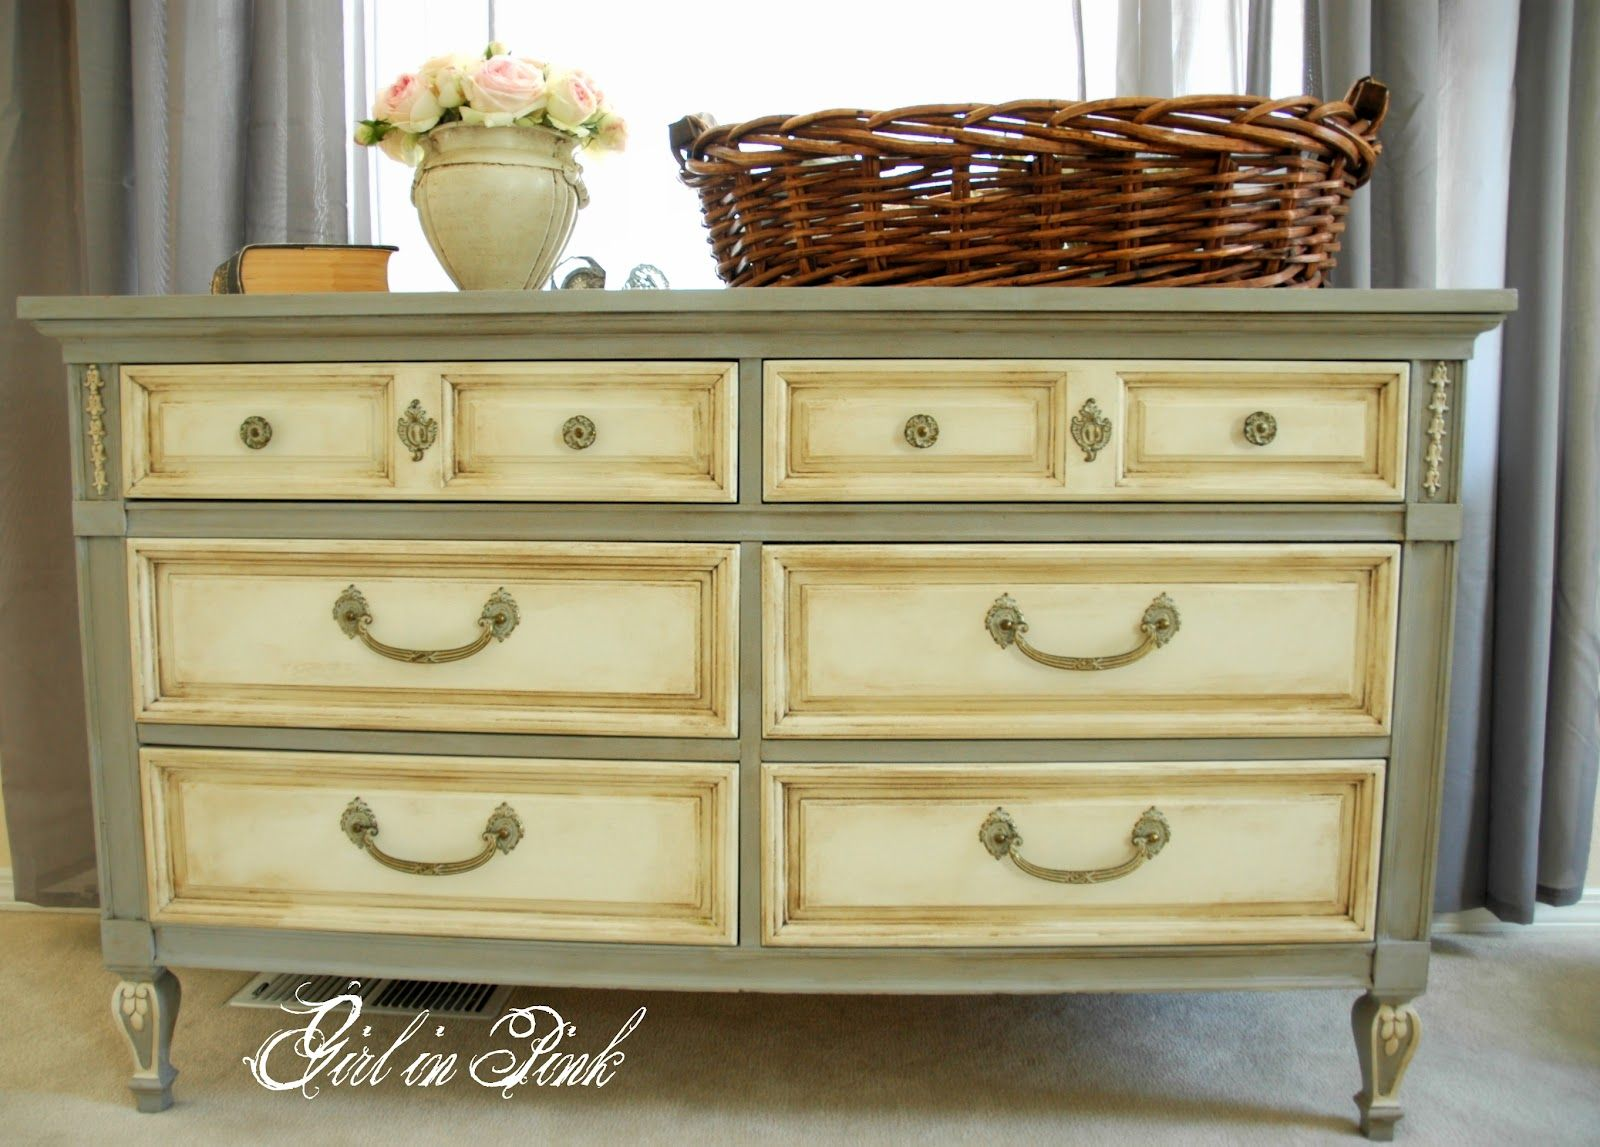 Painting furniture ideas distressed - Chalk Painted Furniture Ideas Do You Have Something You Painted With Annie Sloan Chalk Paint